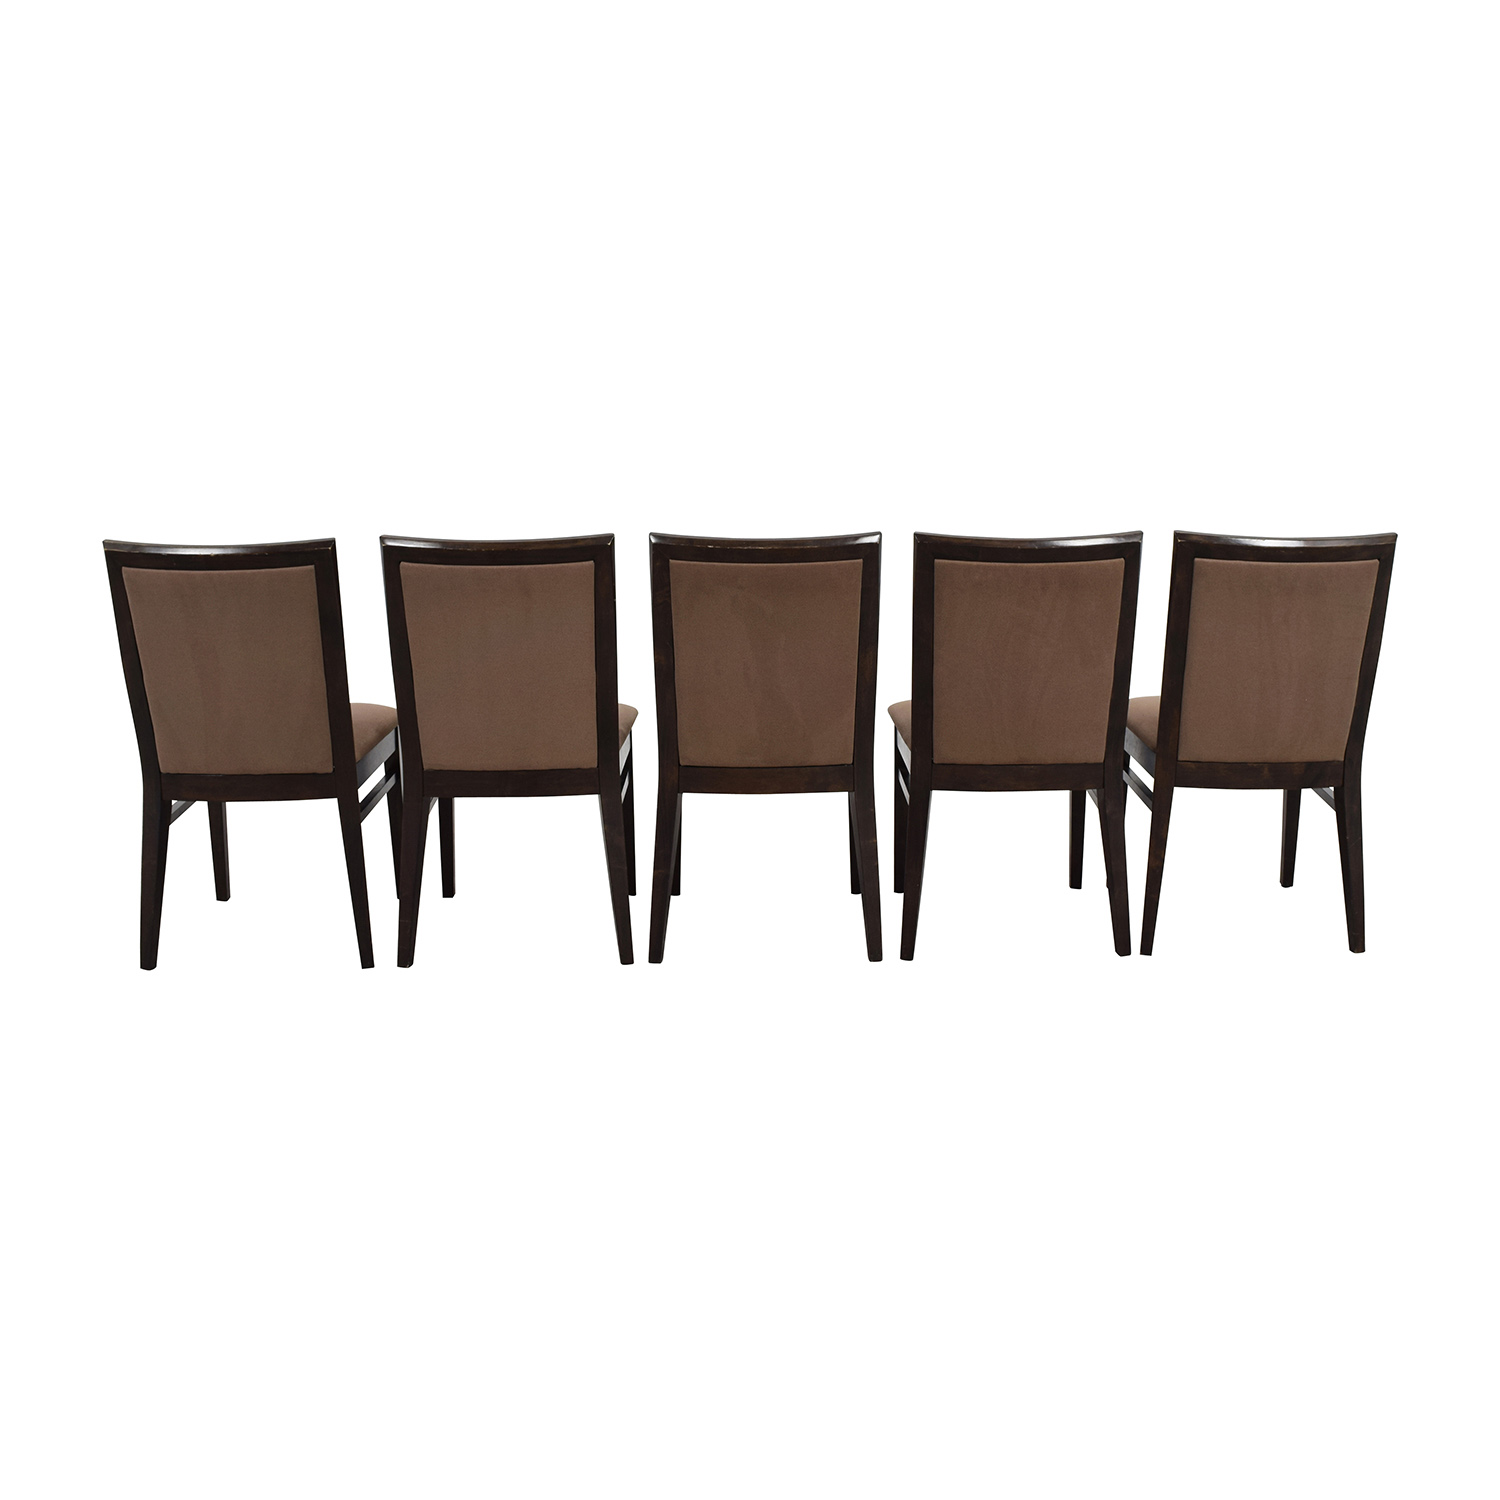 Context Context Mahogany Brown Upholstered Dining Chairs nyc